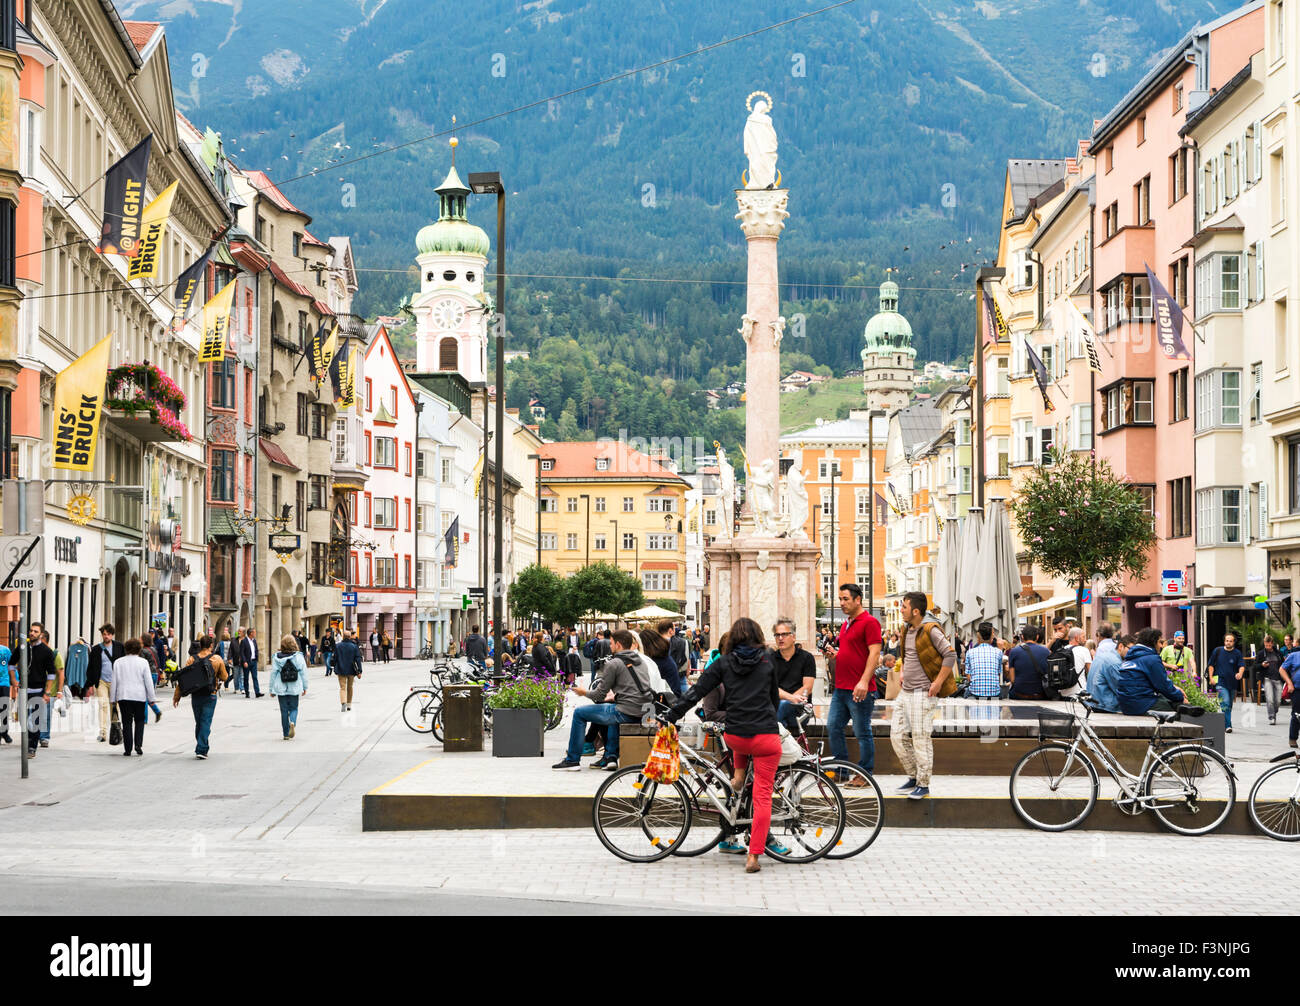 INNSBRUCK, AUSTRIA - SEPTEMBER 22: Tourists in the pedestrian area of Innsbruck, Austria on September 22, 2015. - Stock Image